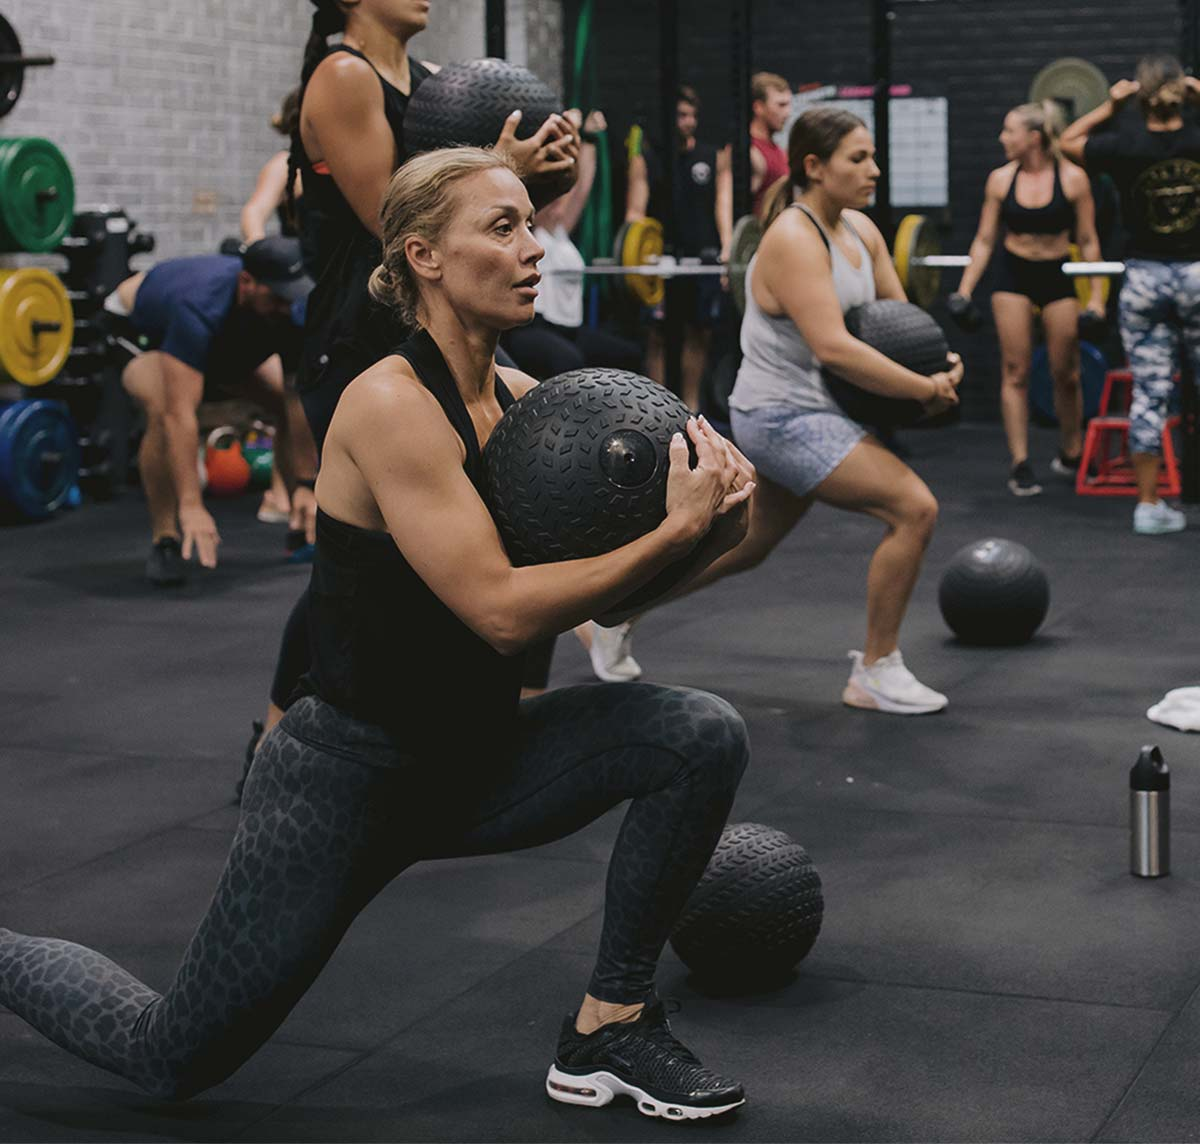 Woman working out lifting medicine ball